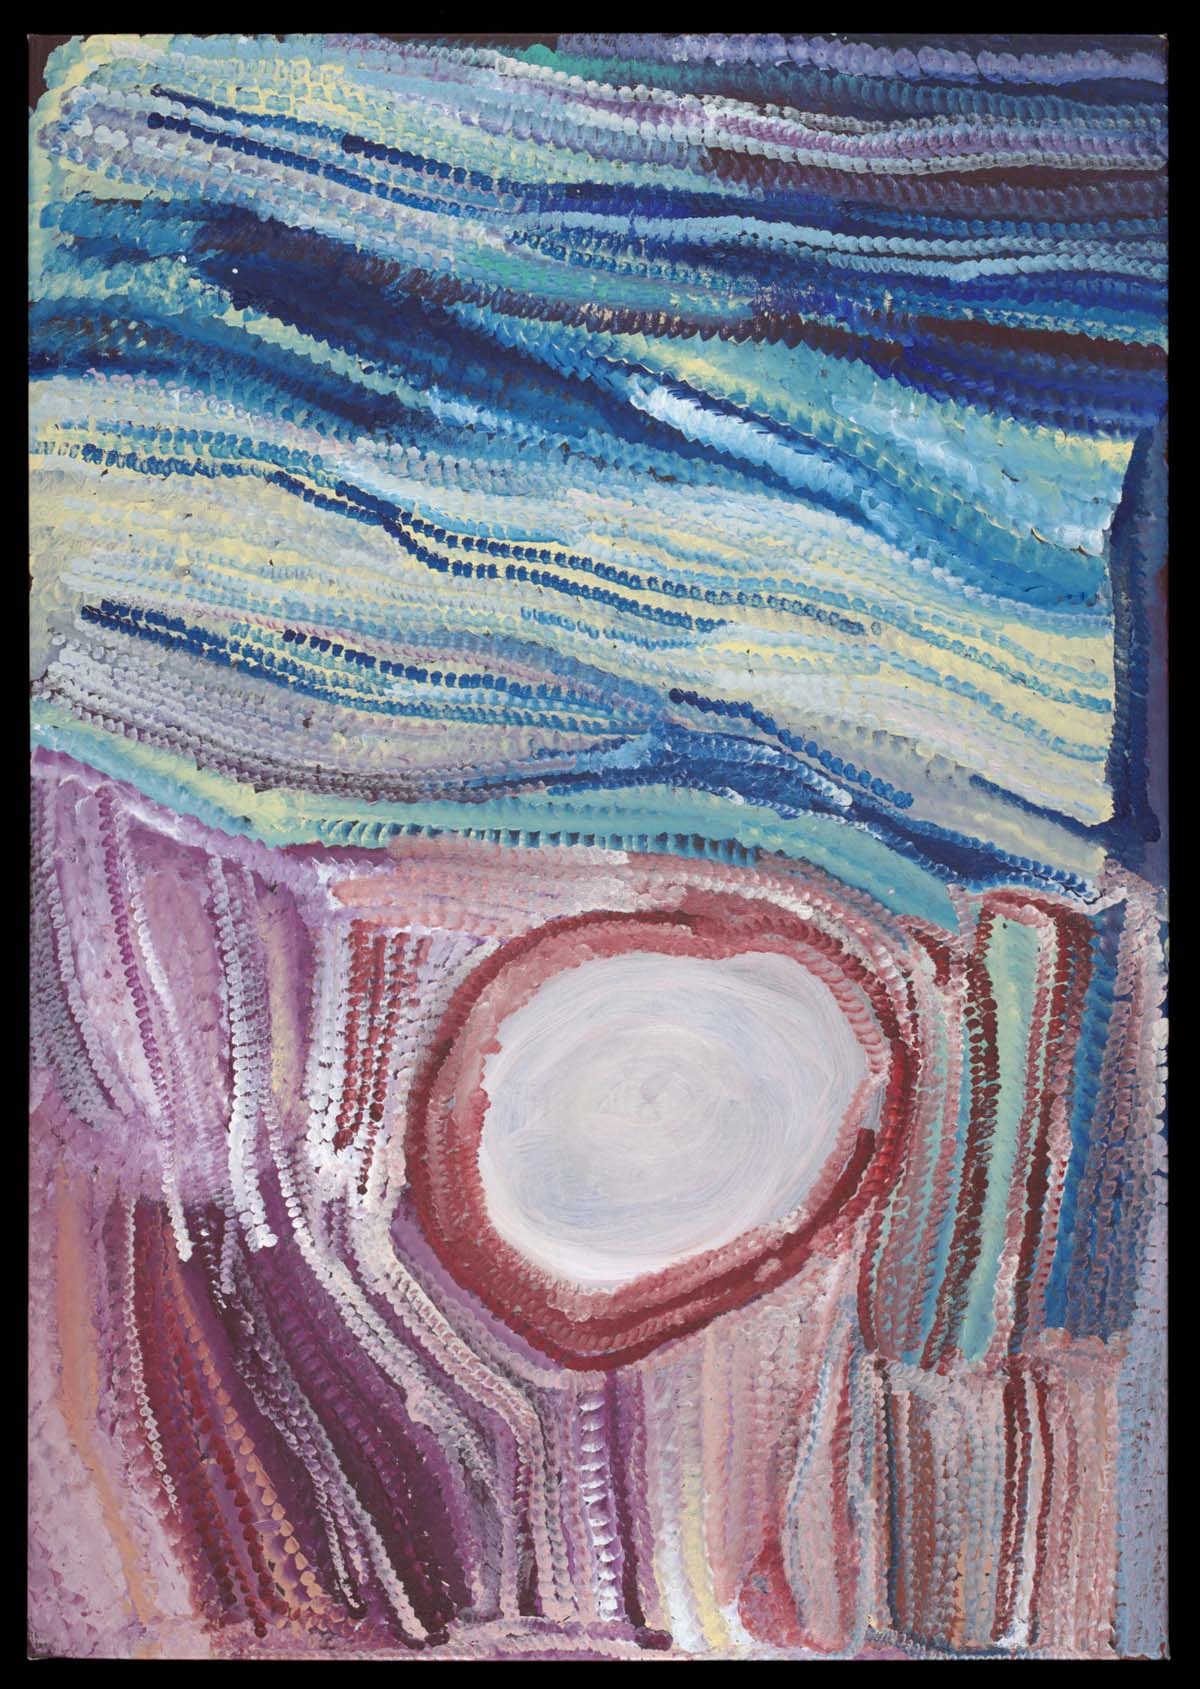 abstract painting with a central circular shape and lines